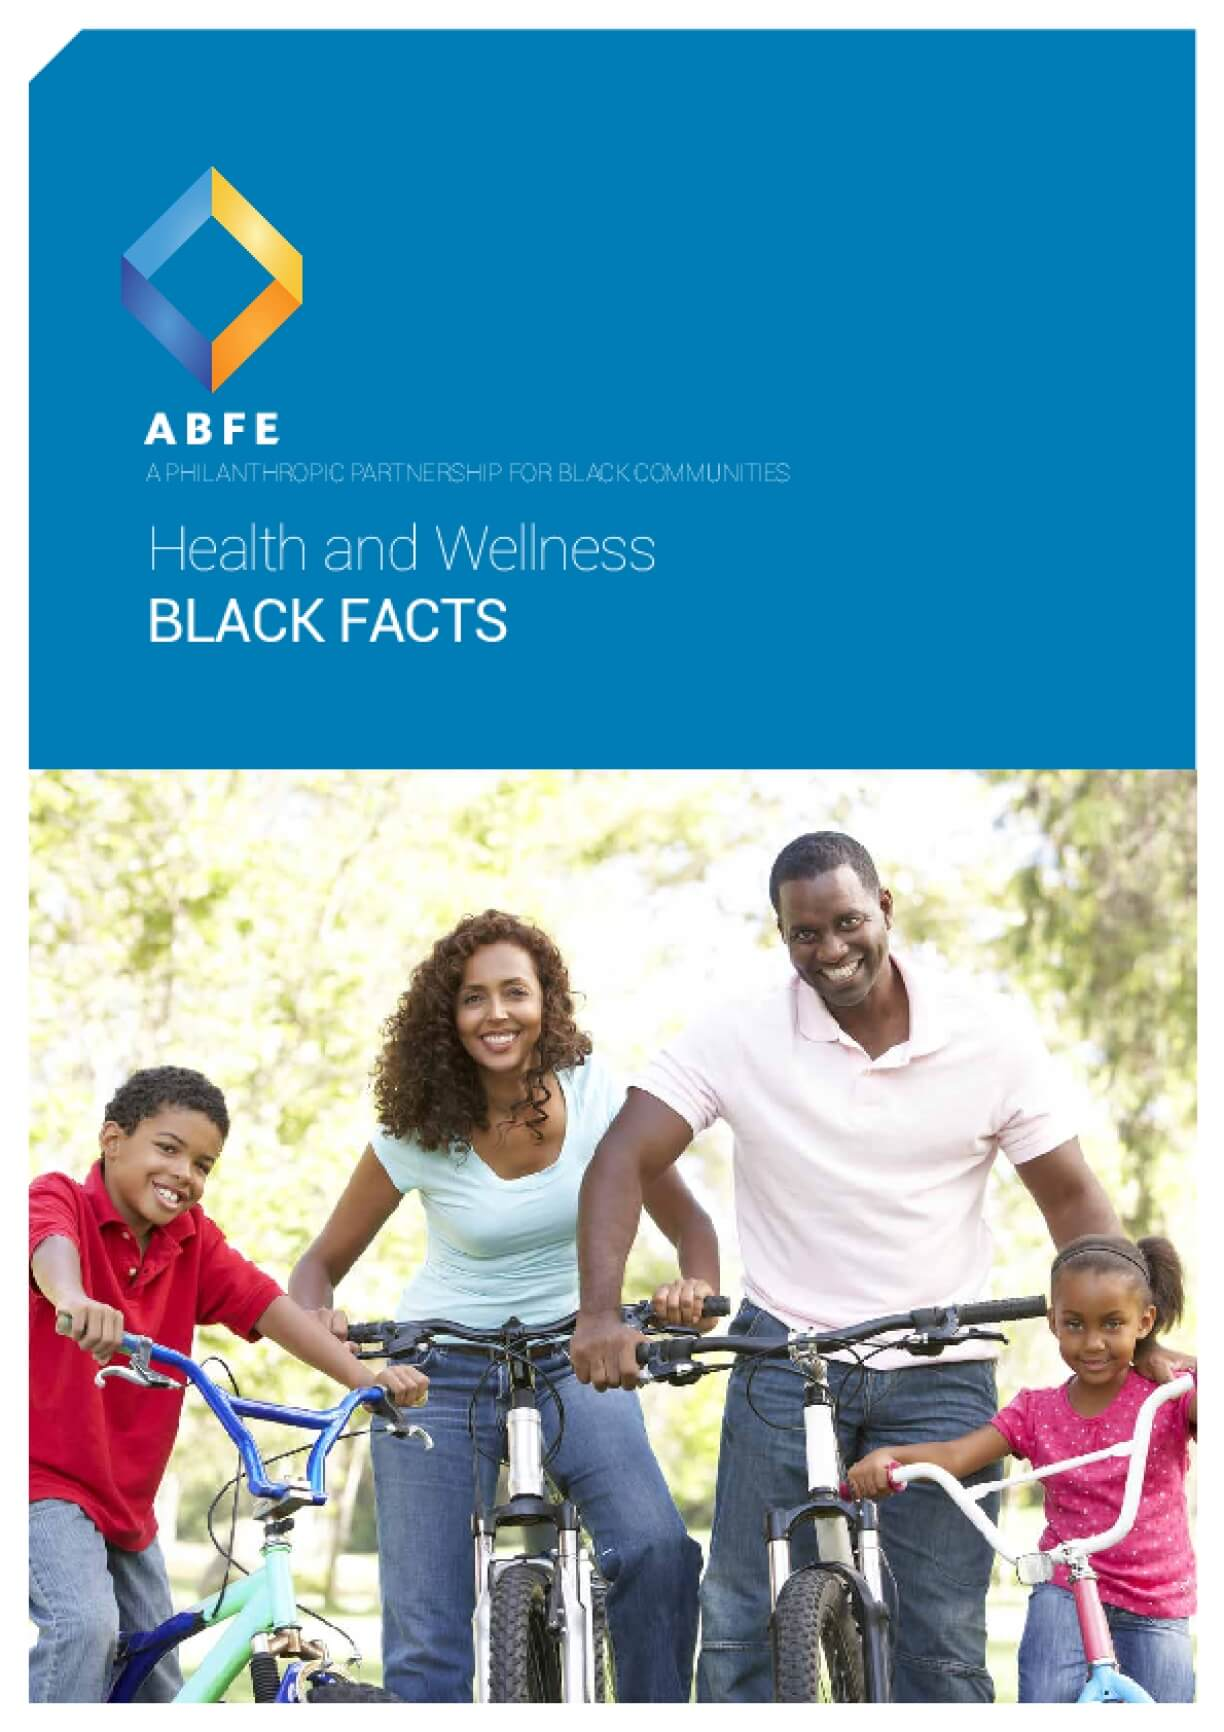 Health and Wellness: Black Facts